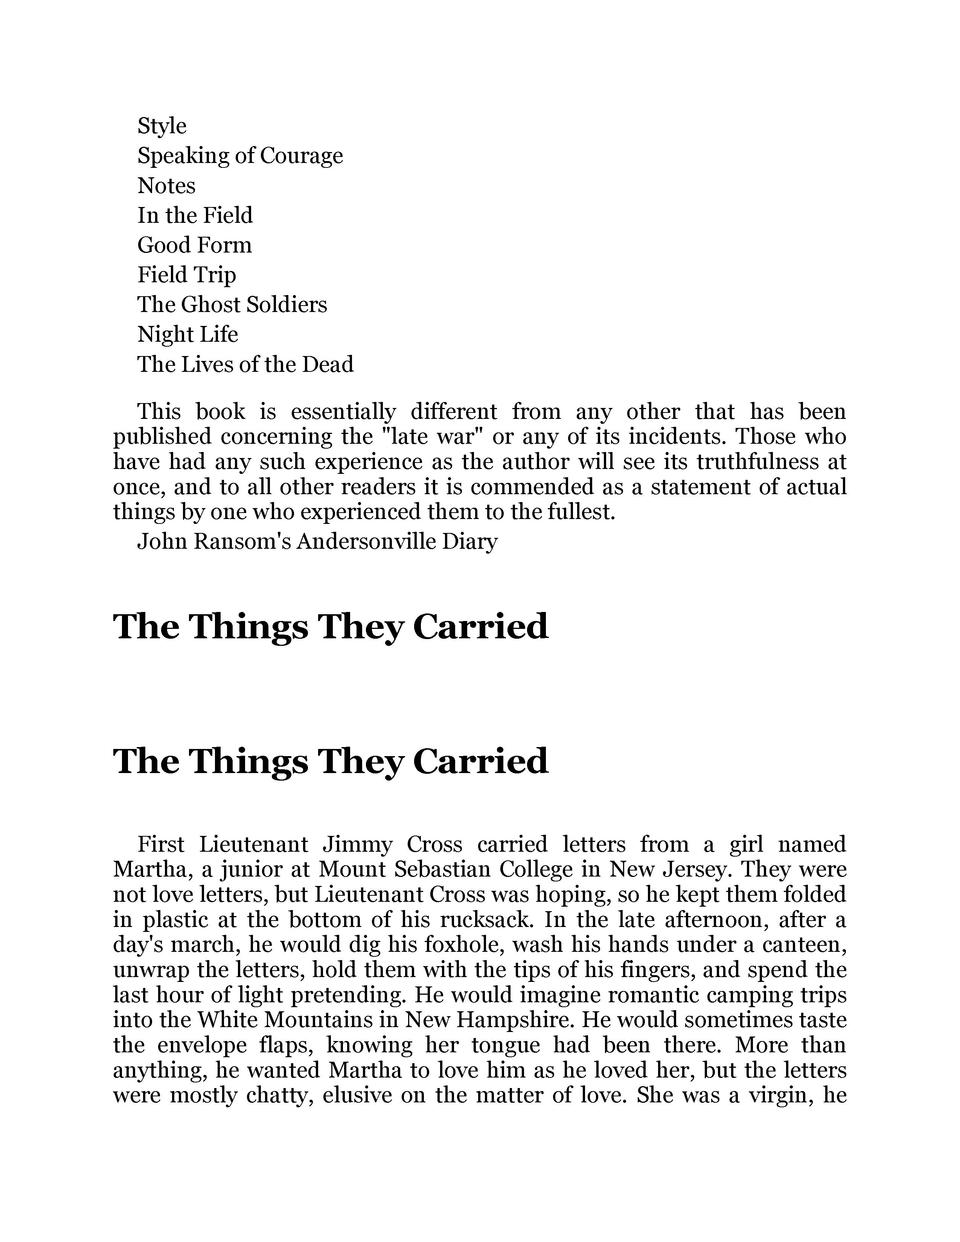 the things they carried : simplebooklet.com